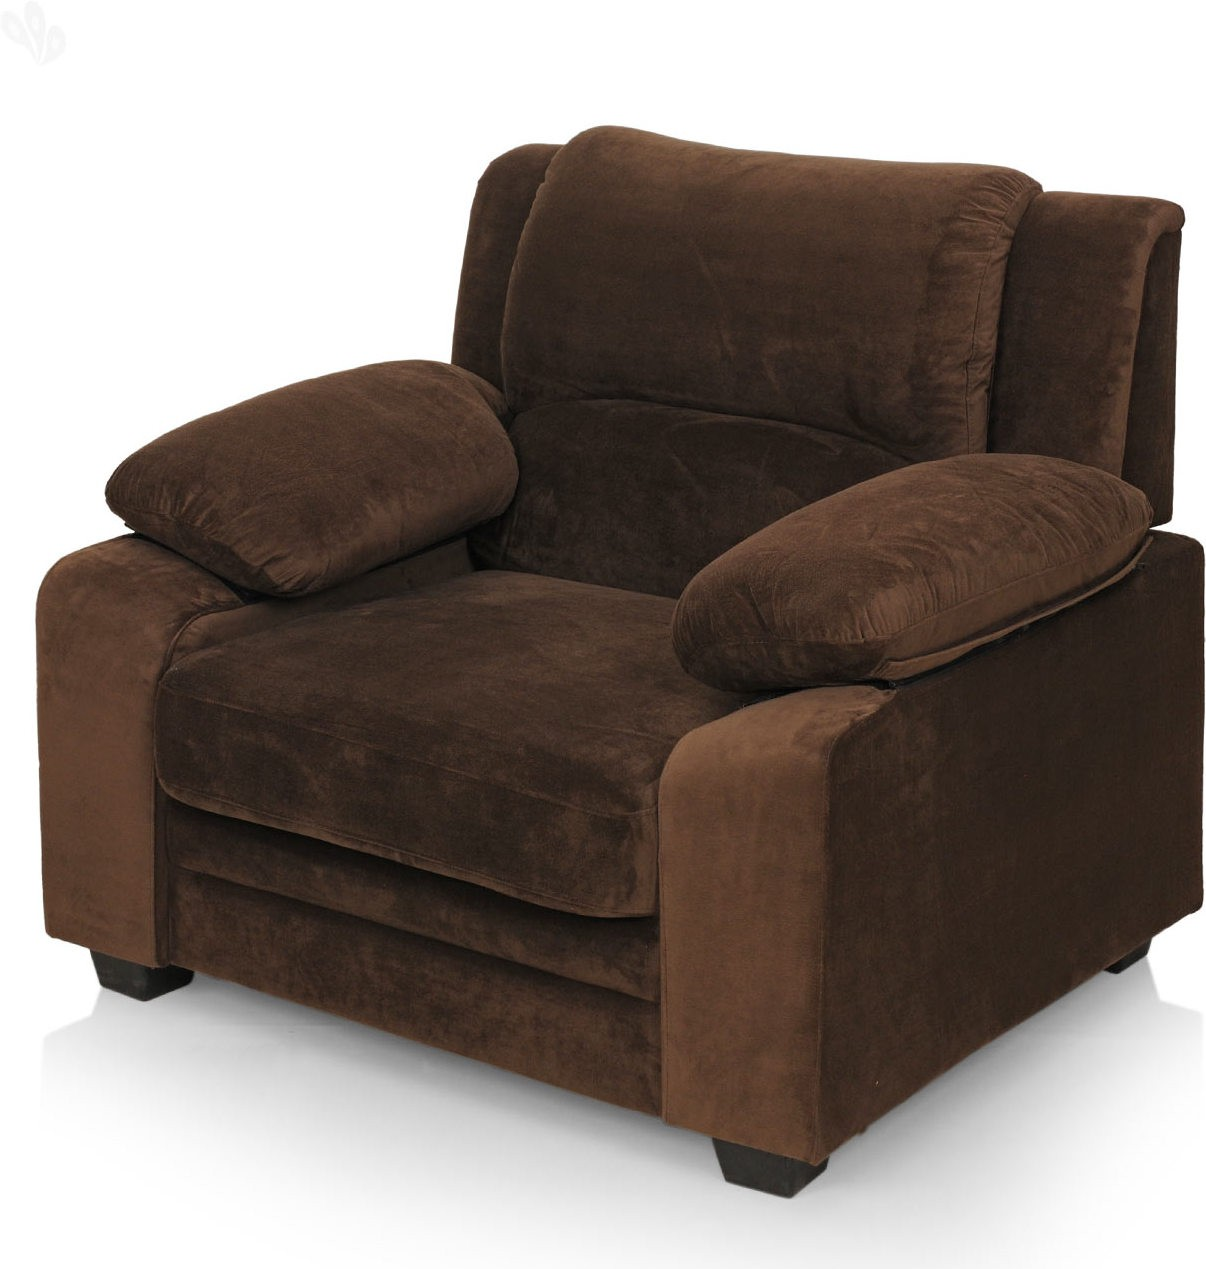 View Royal Oak Magna Fabric 1 Seater Sofa(Finish Color - Brown) Furniture (Royal Oak)